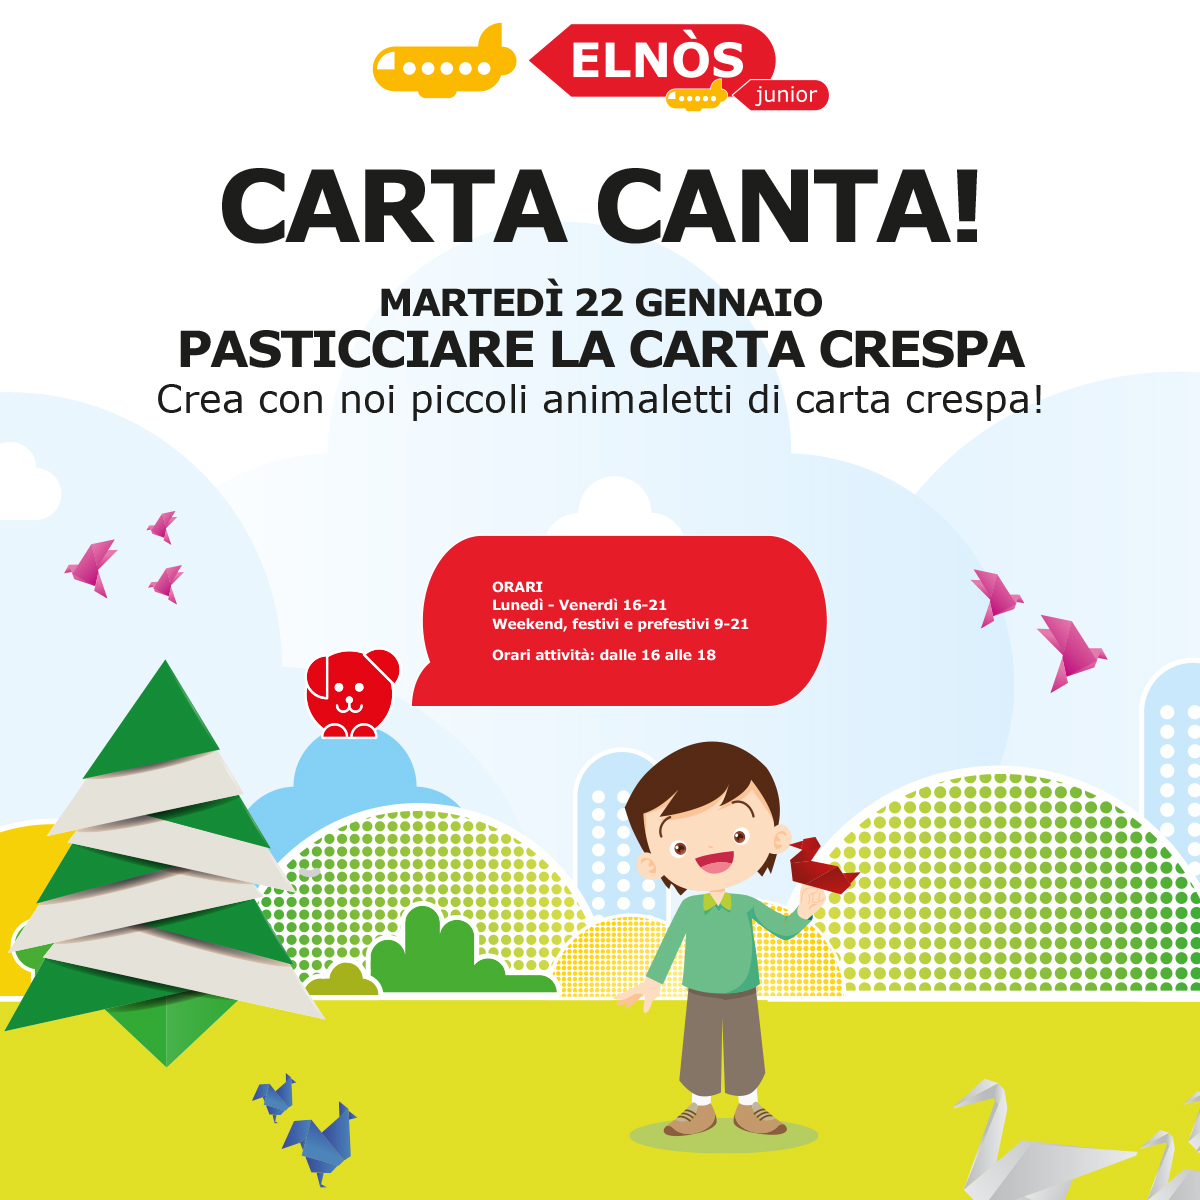 ELNÒS Junior - CARTA CANTA - Pasticciare la carta crespa